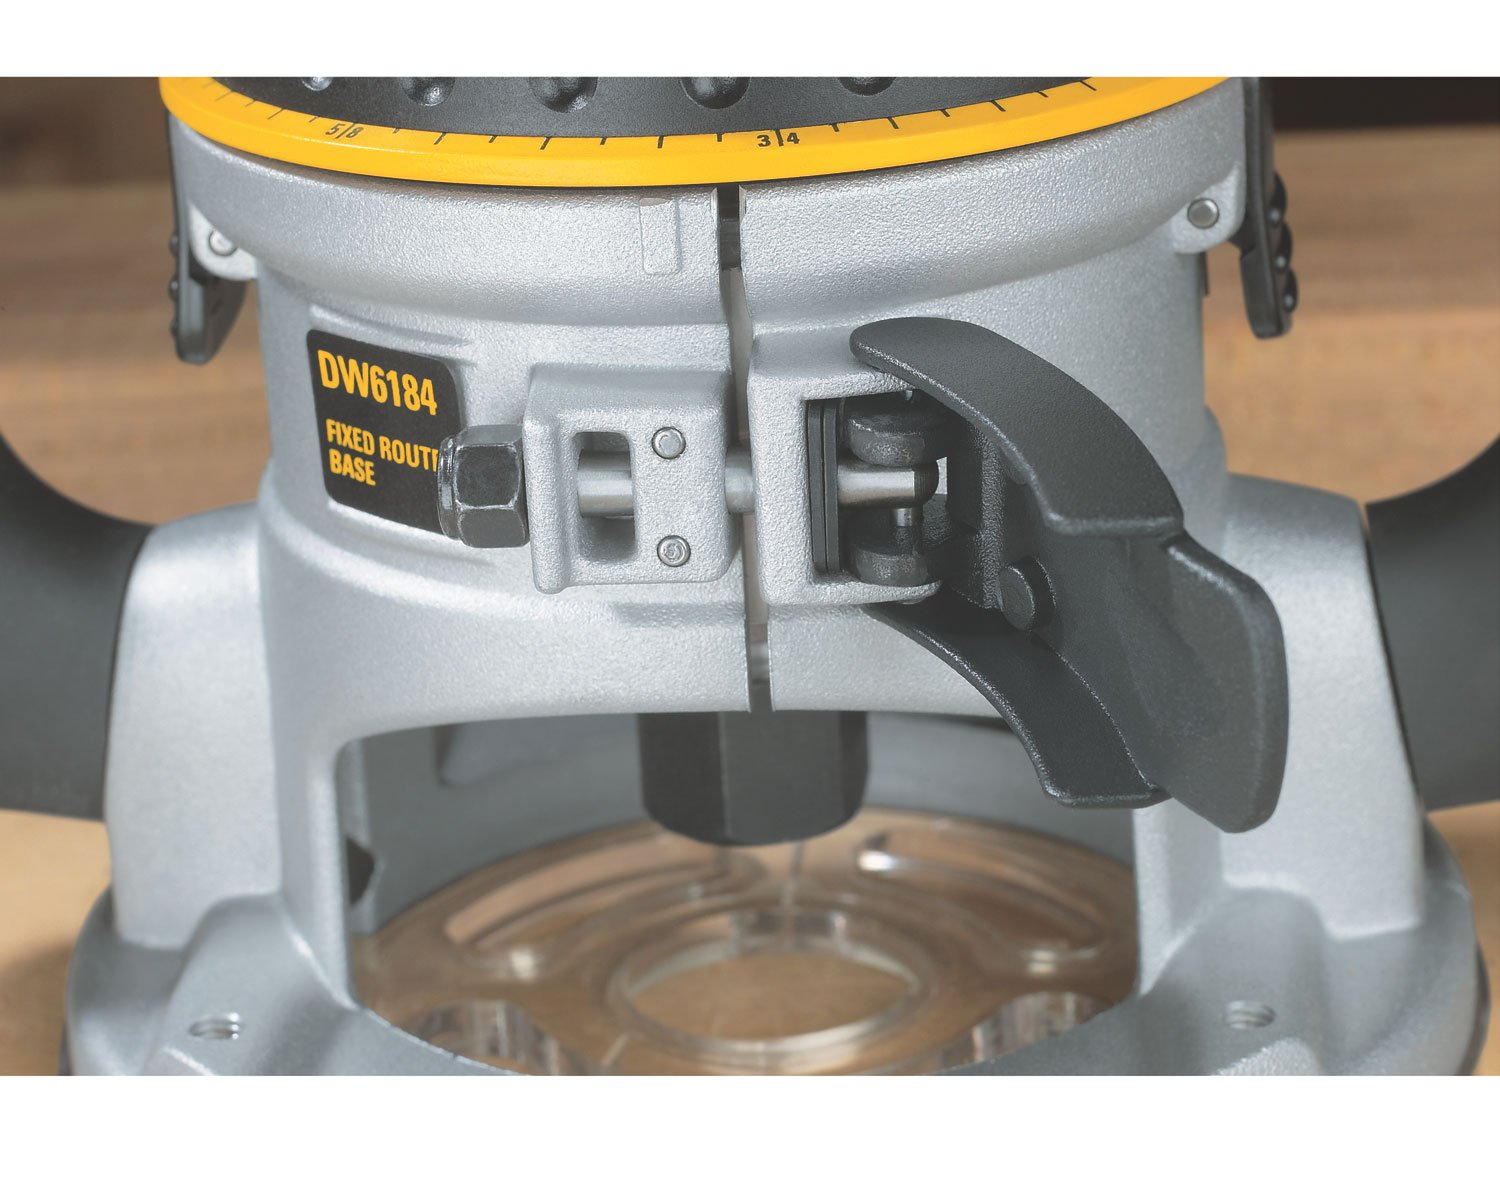 Dewalt dw618 38018 hp electronic variable speed fixed base router dewalt dw618 38018 hp electronic variable speed fixed base router amazon tools home improvement greentooth Image collections